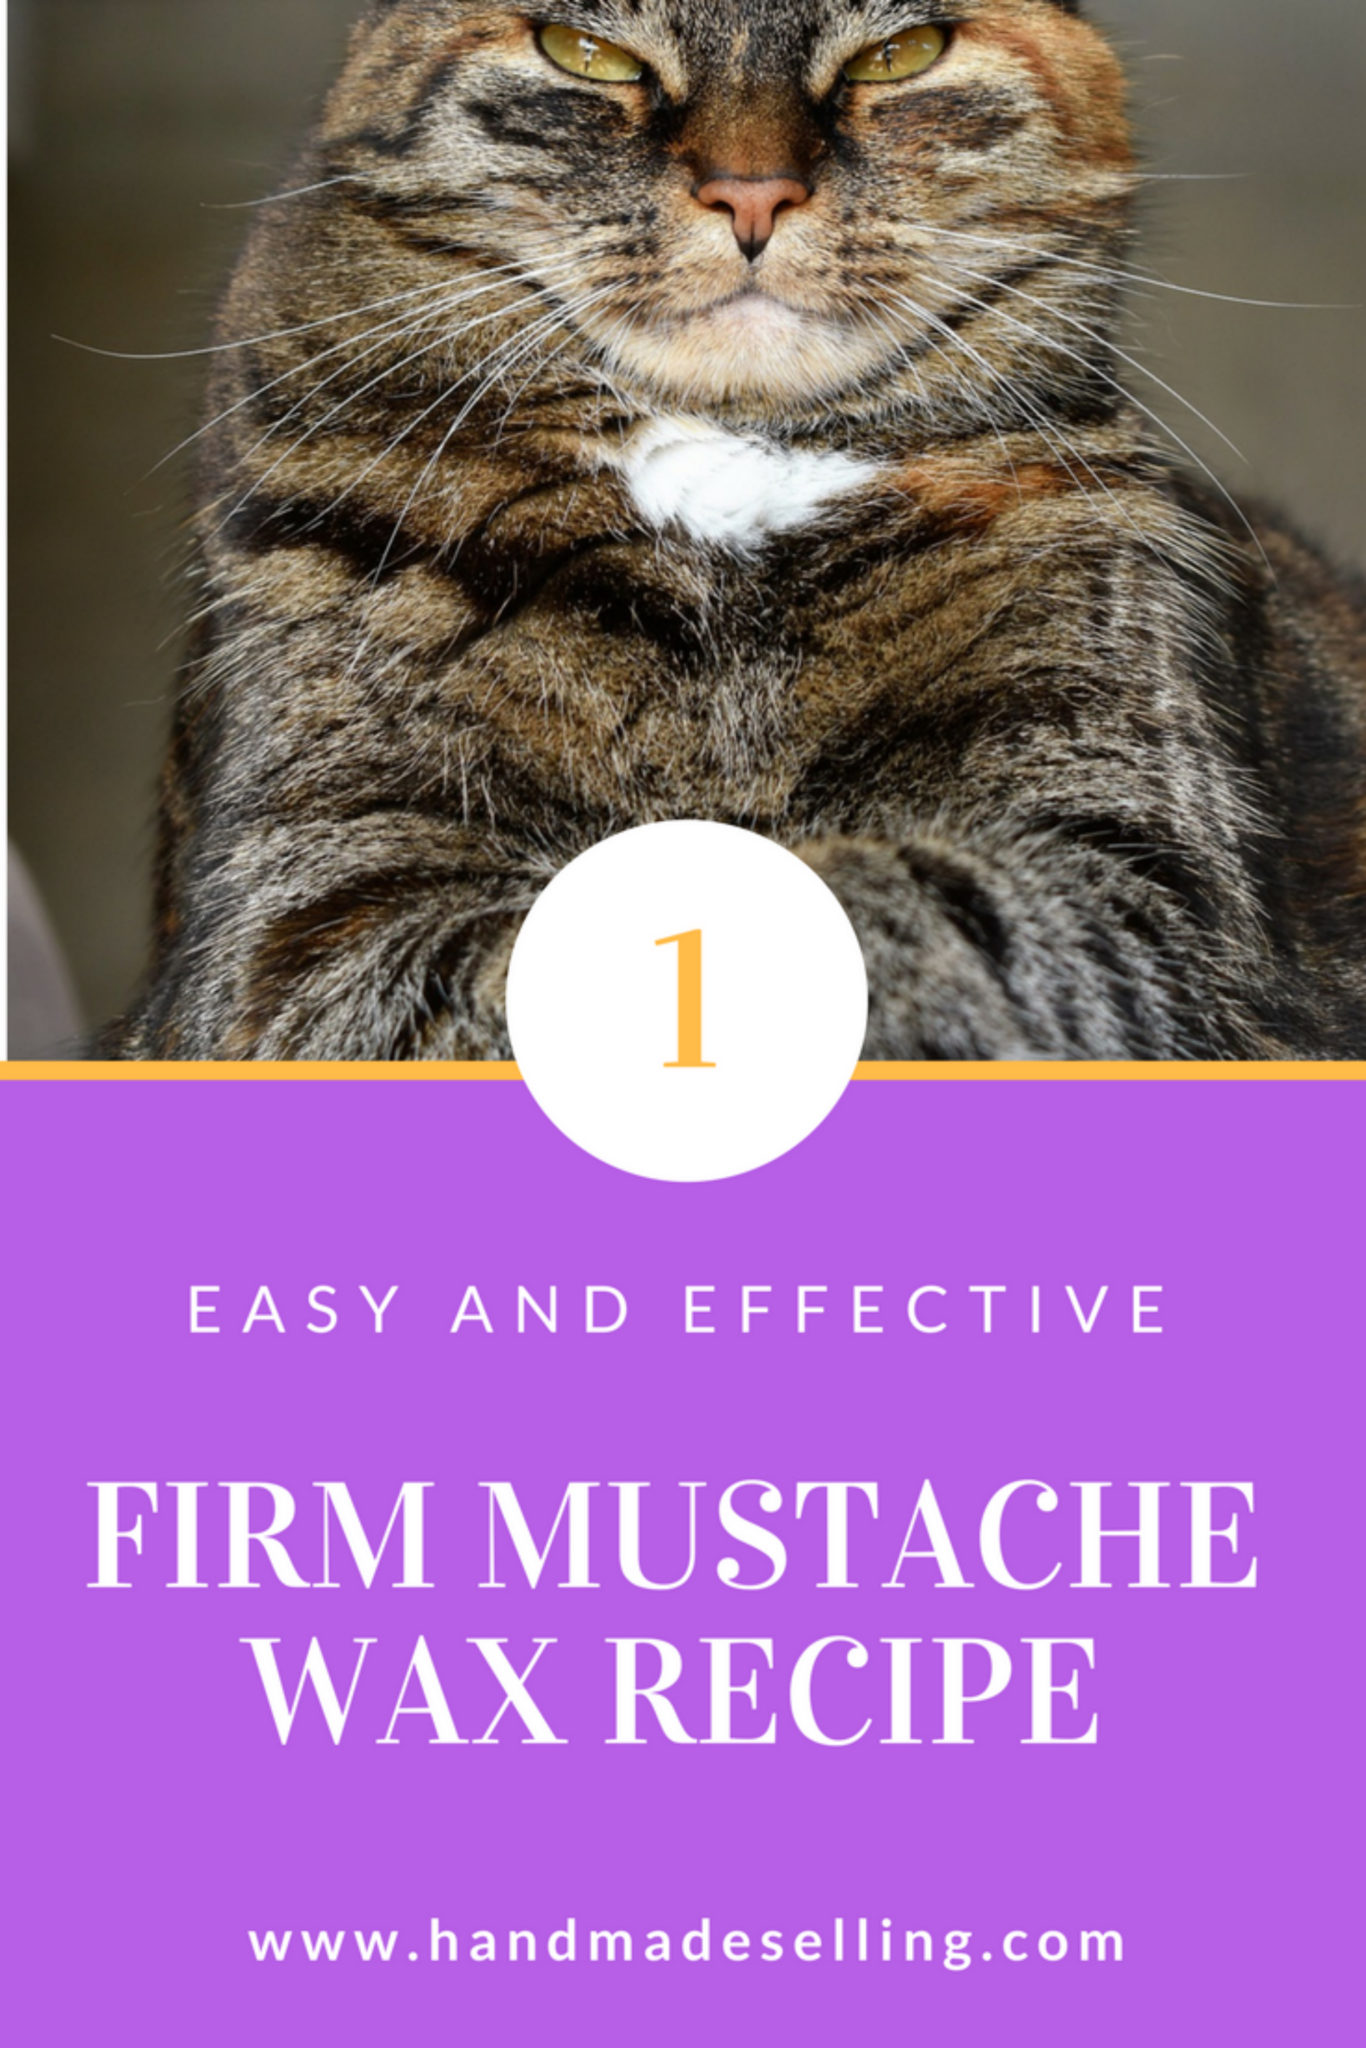 How to Make a Fantastic Firm Mustache Wax Recipe